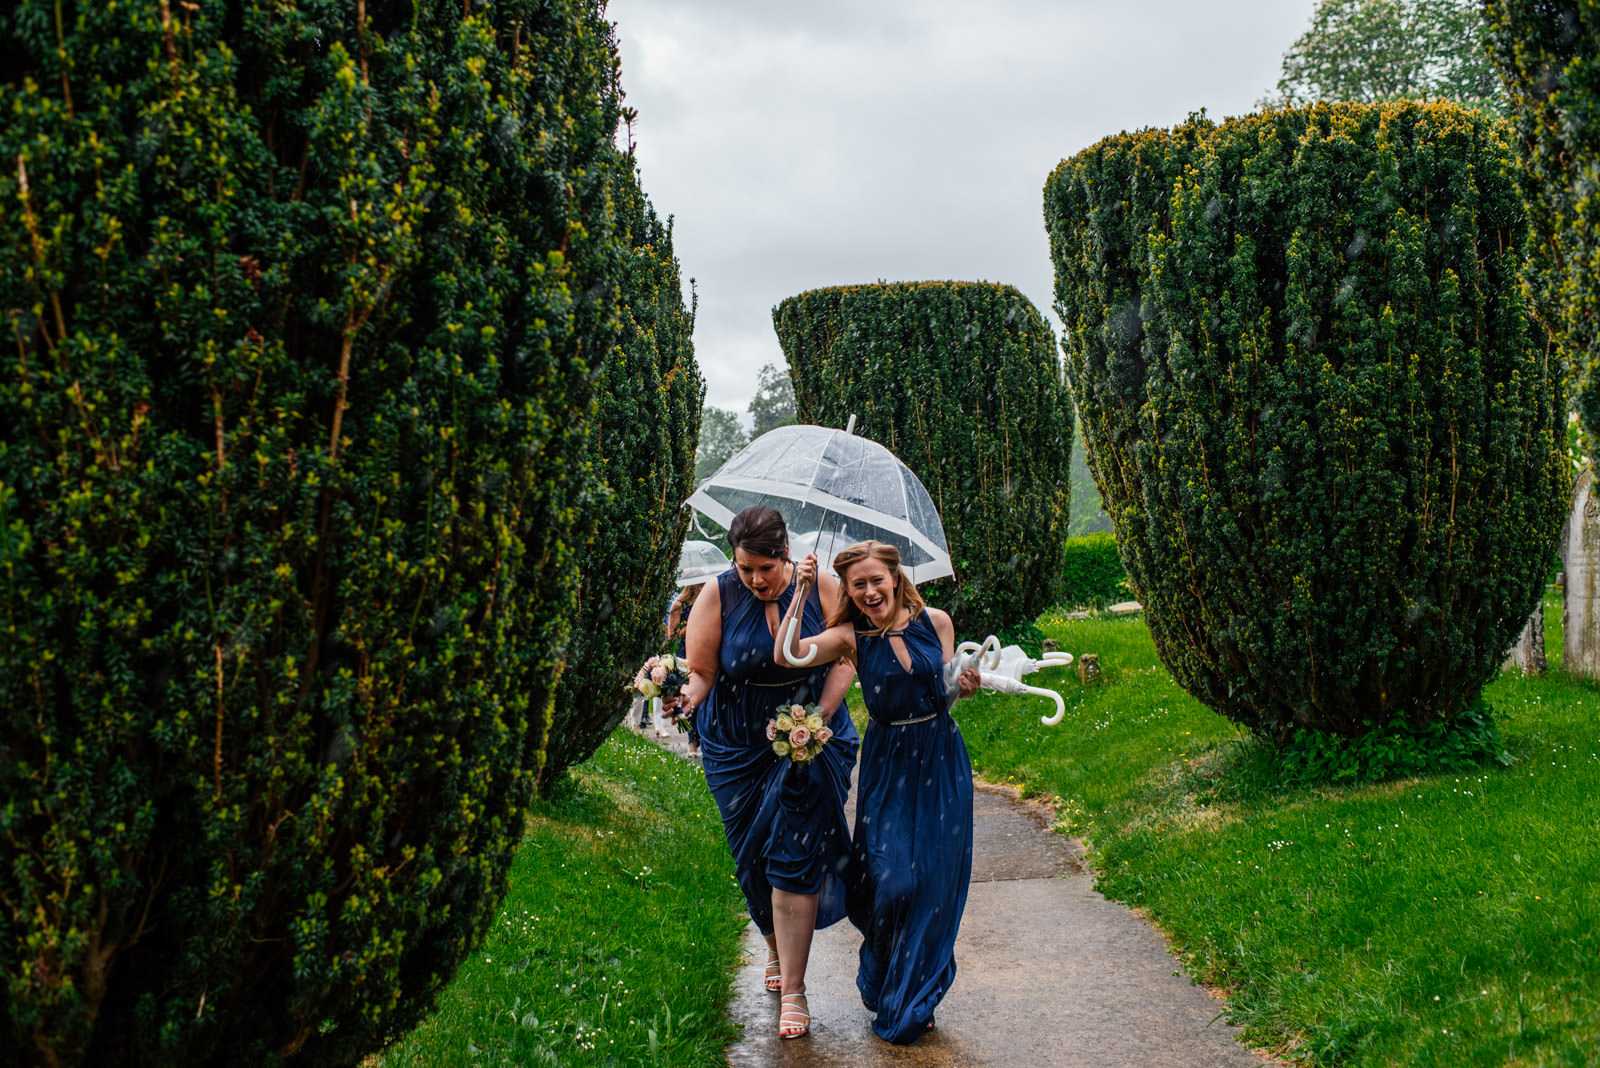 Bridesmaids arriving in at church in the rain